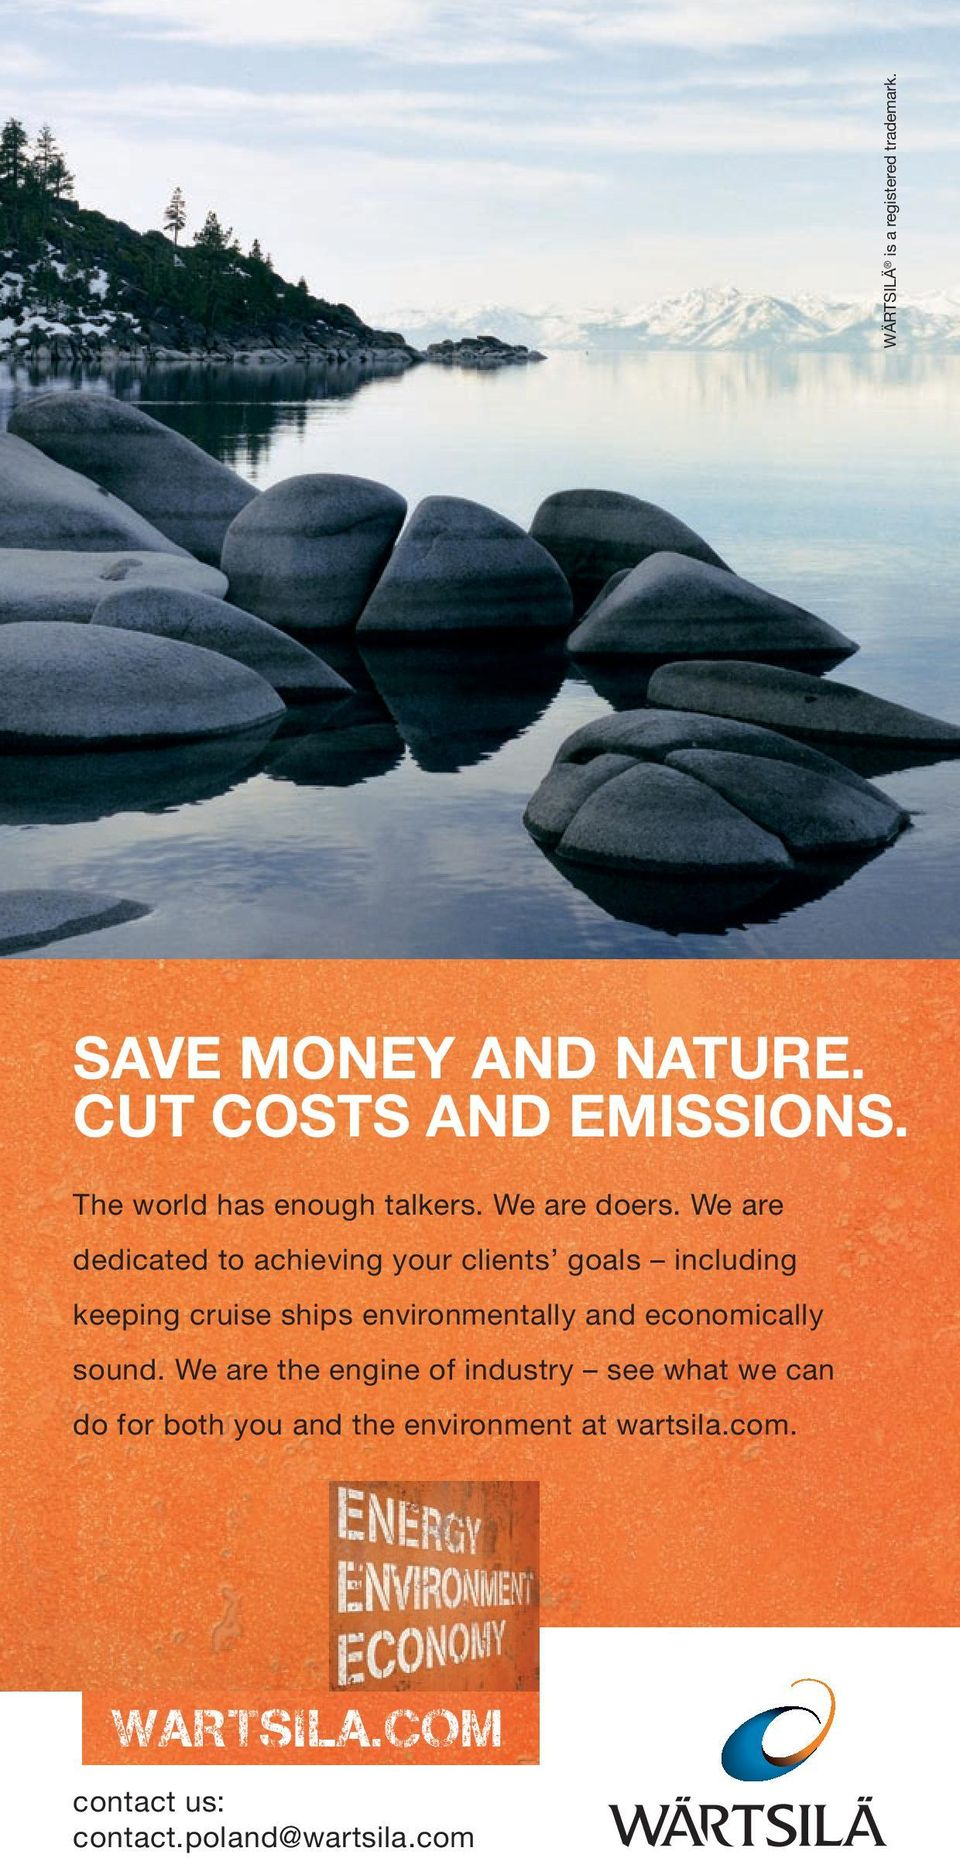 We are dedicated to achieving your clients goals including keeping cruise ships environmentally and